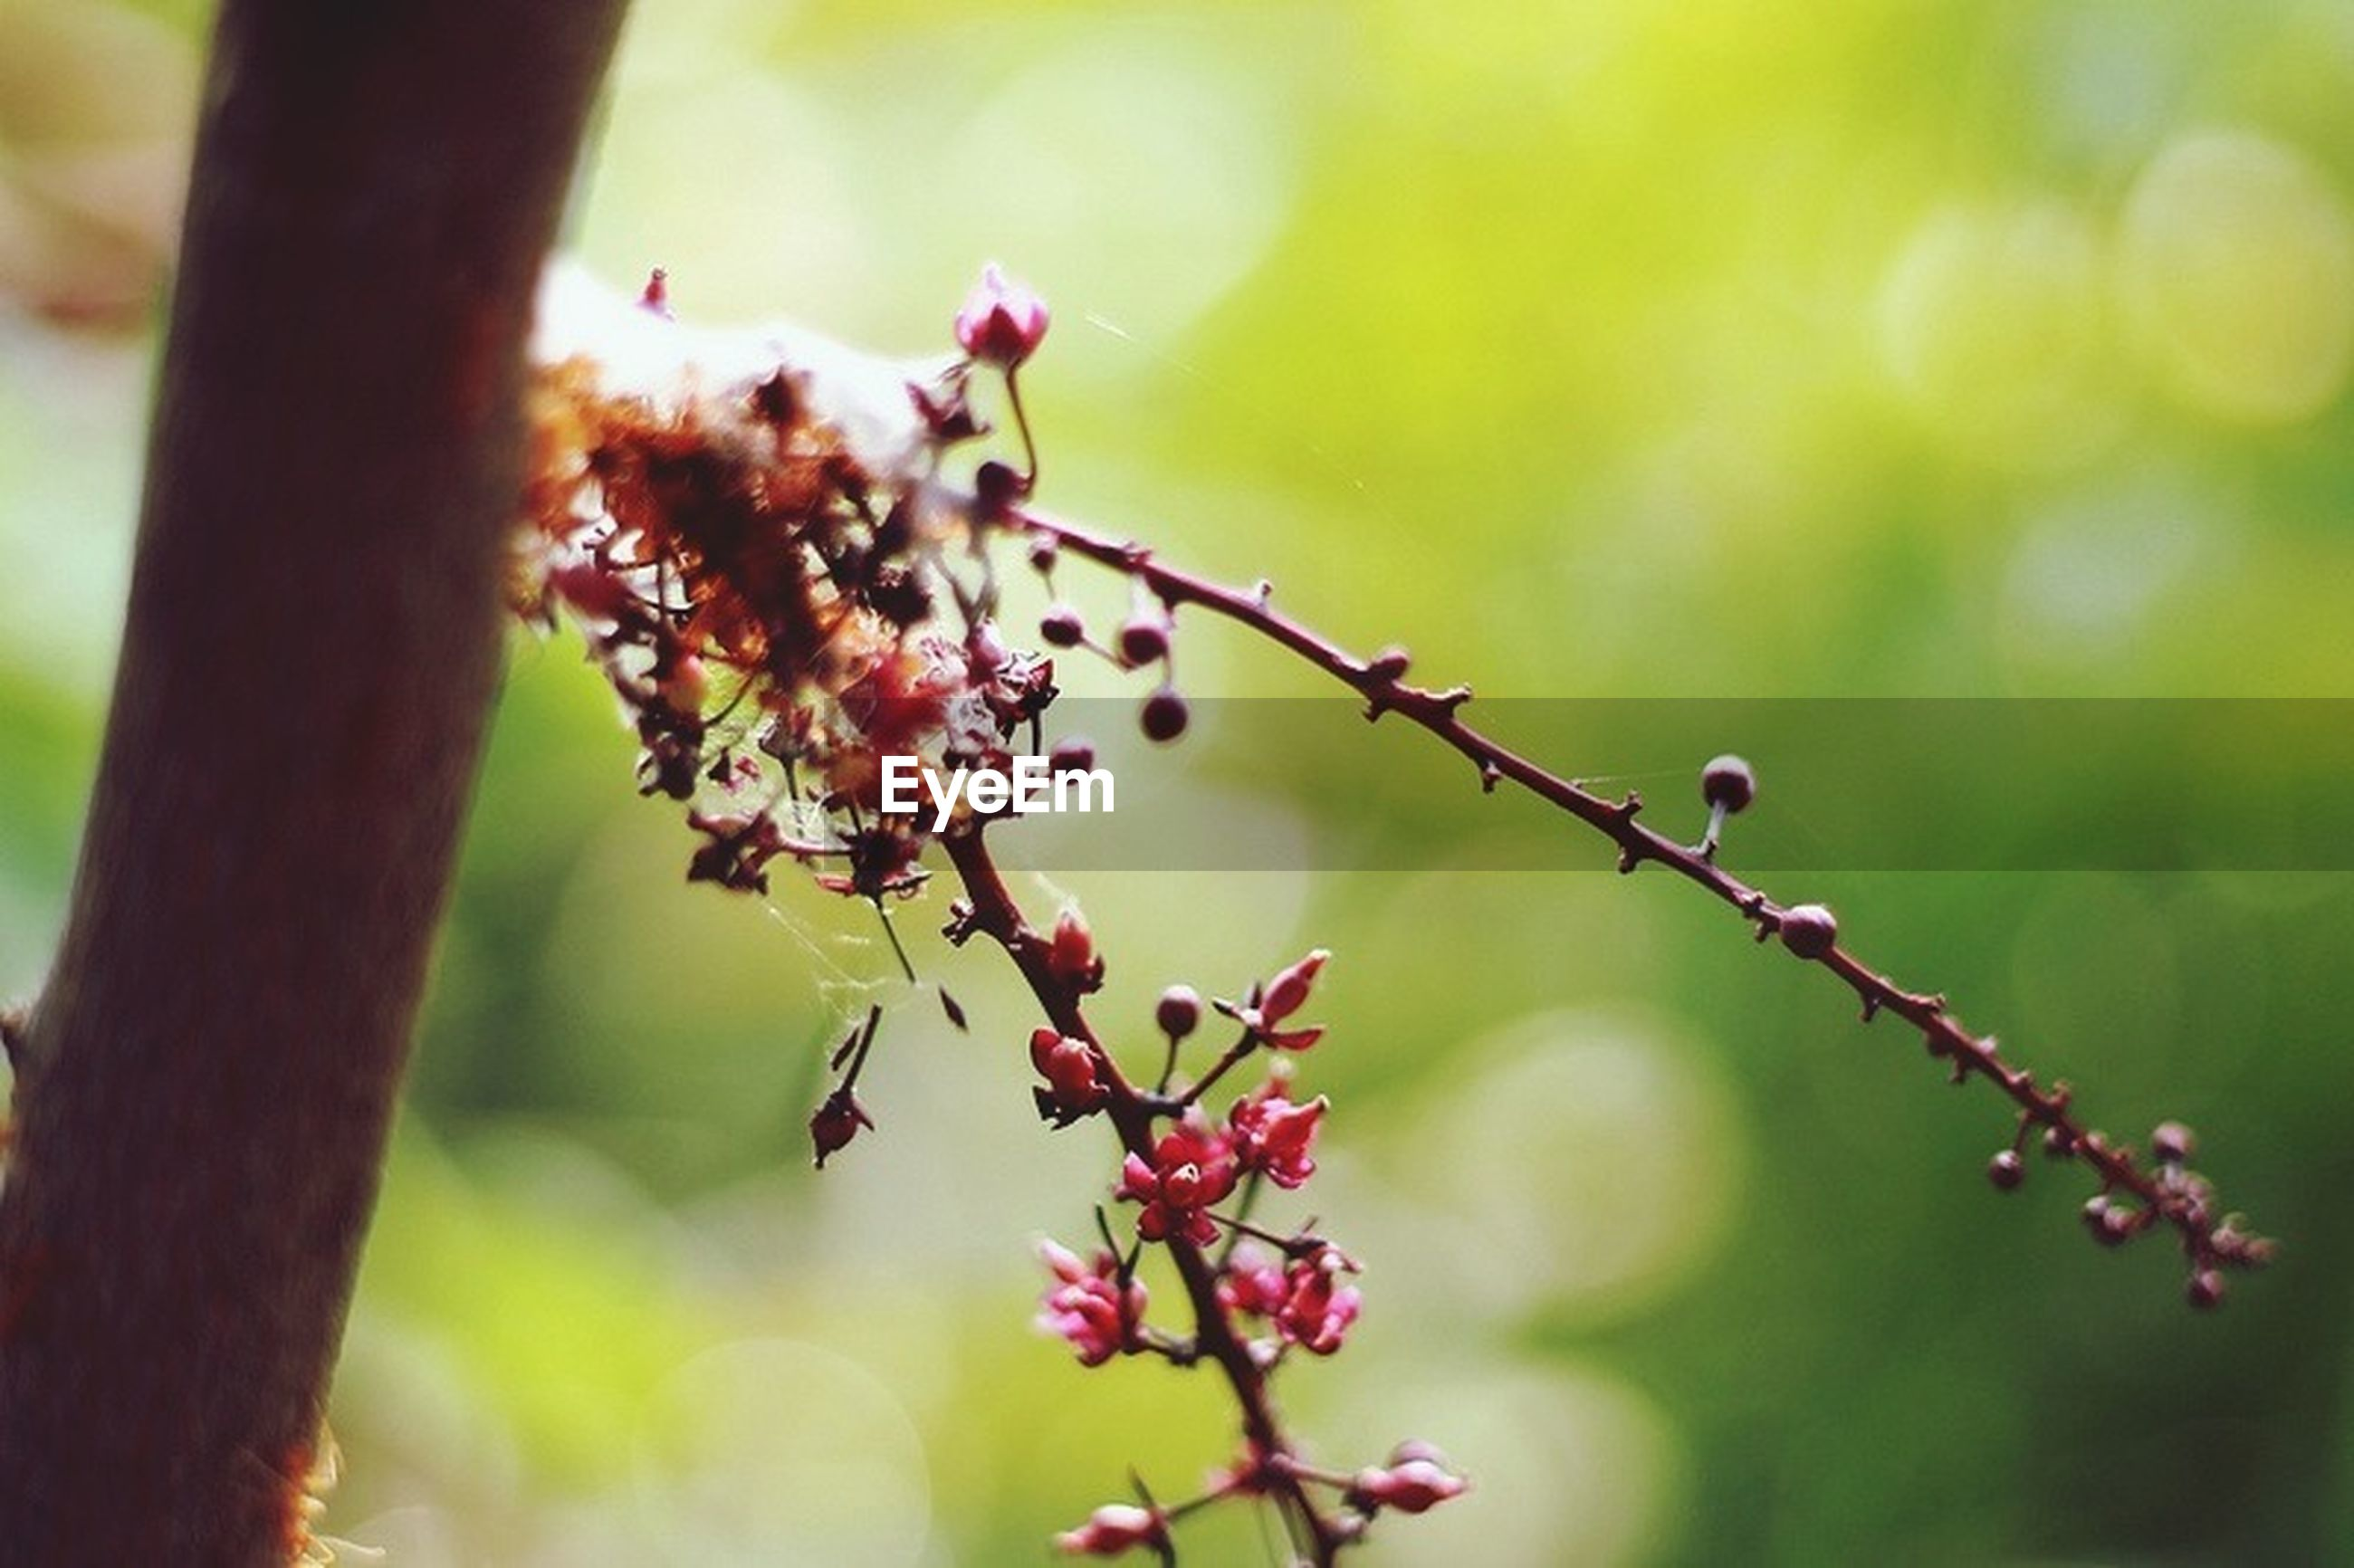 nature, growth, day, outdoors, beauty in nature, focus on foreground, plant, no people, close-up, fragility, tree, flower, freshness